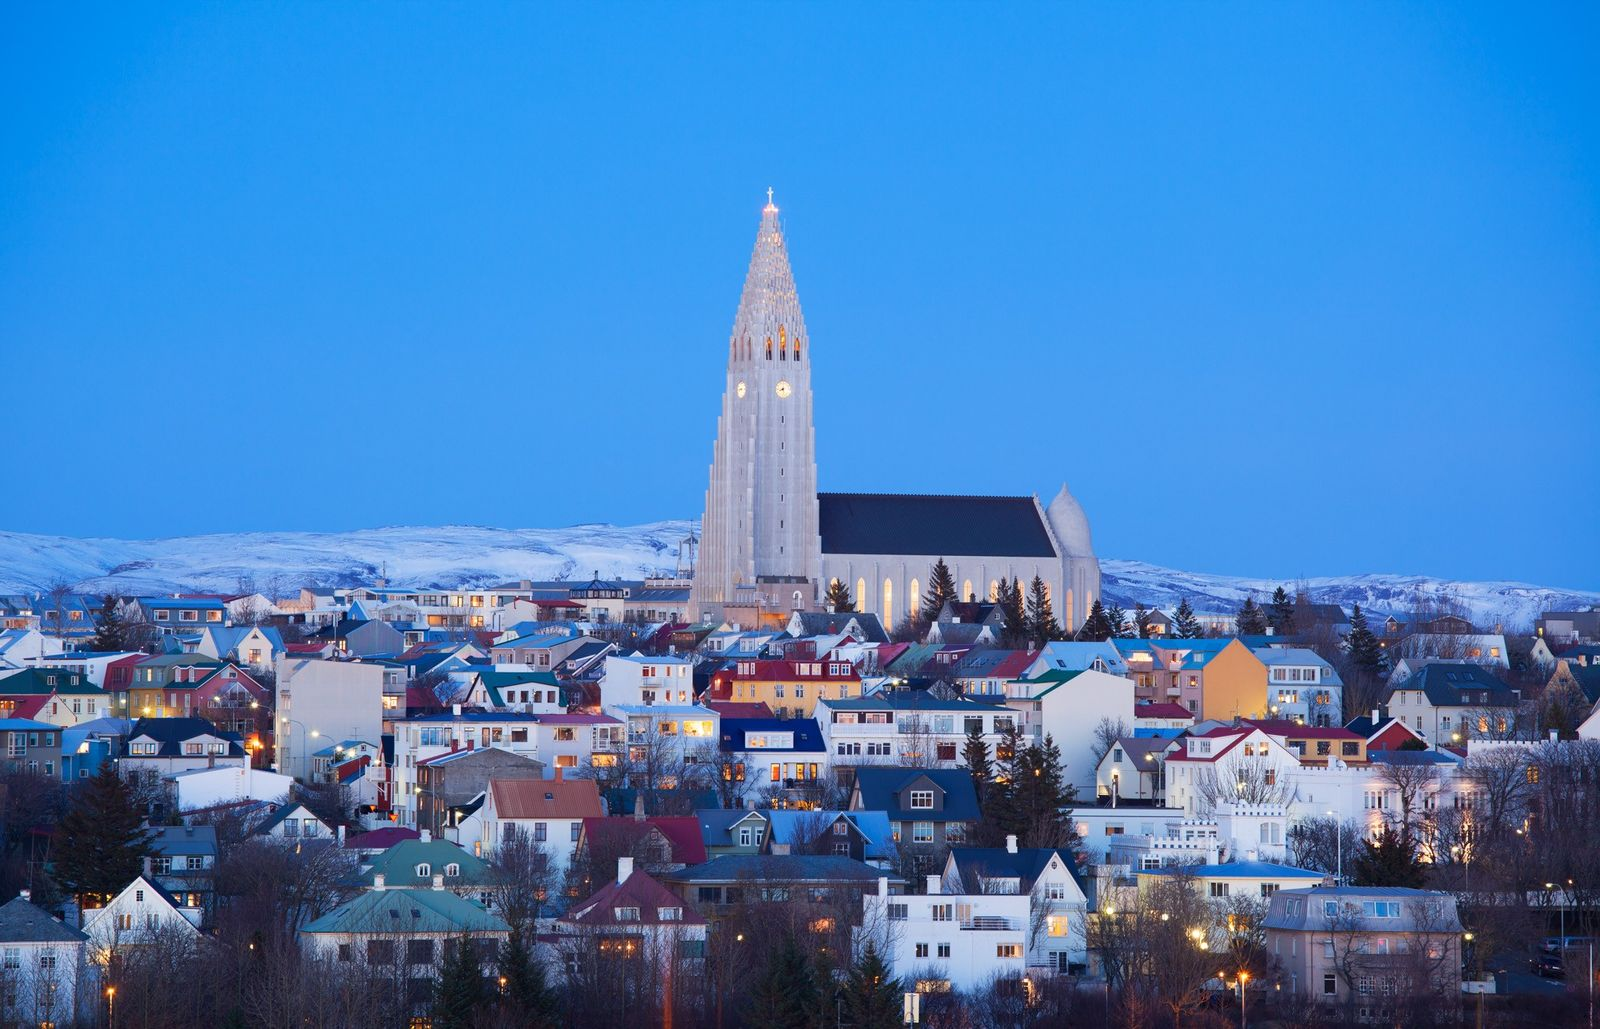 Iceland's tallest church was inspired by volcanoes